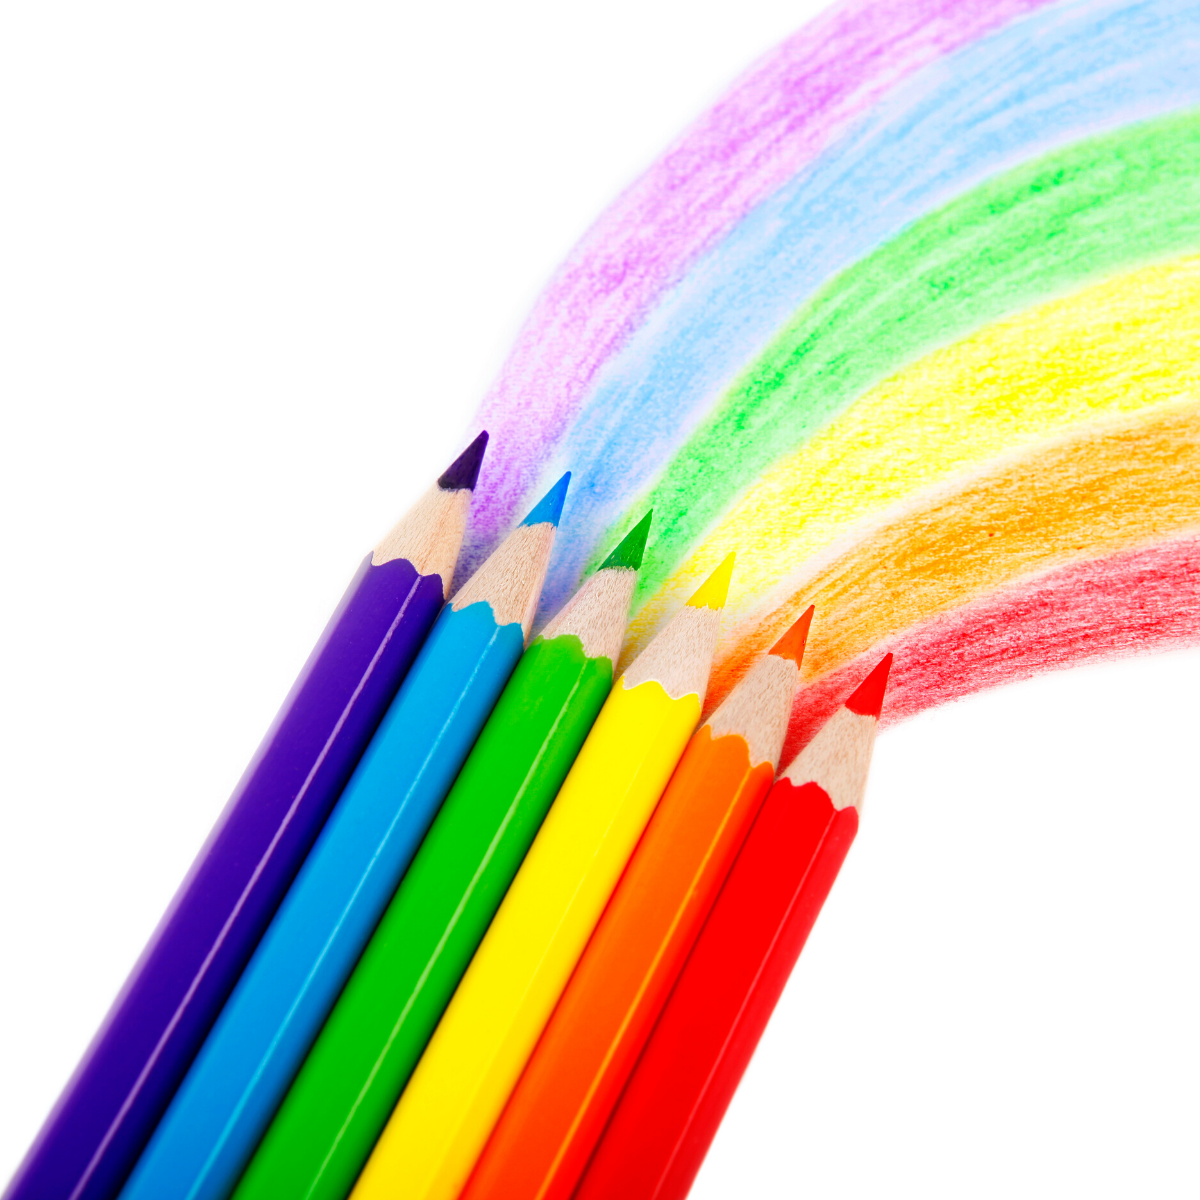 Colored pencils drawing a rainbow on a white background